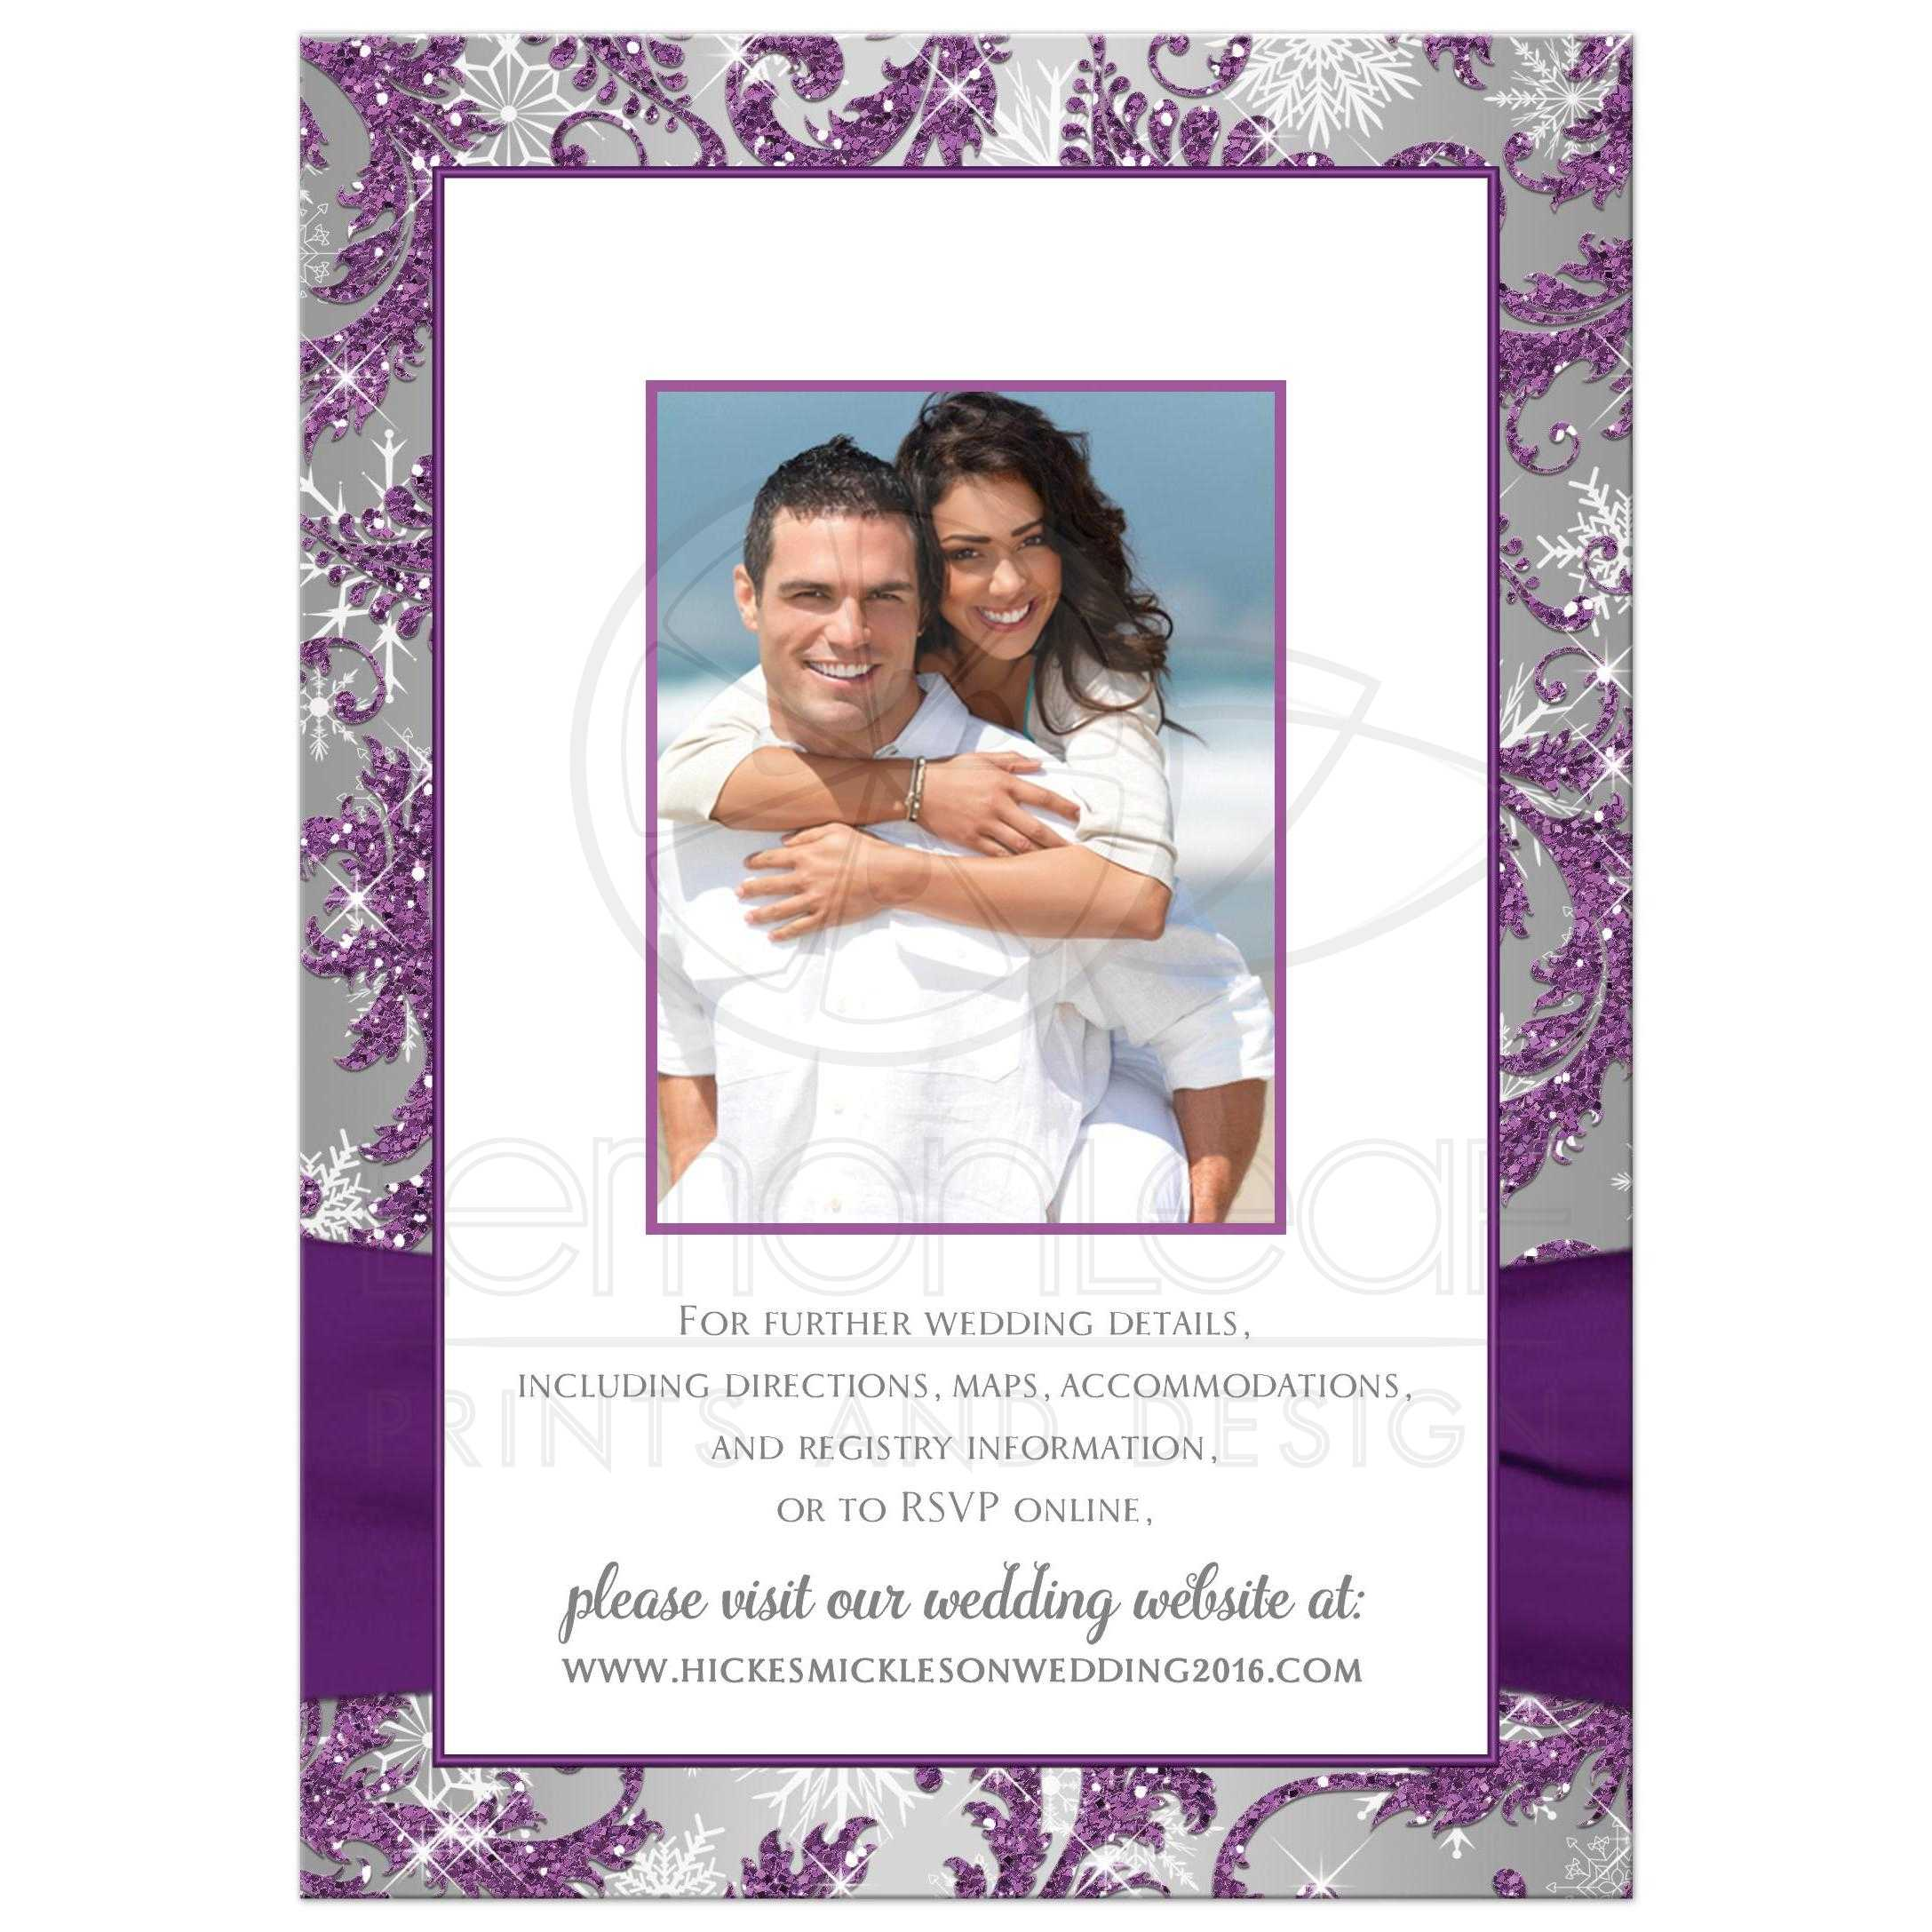 affordable purple silver grey and white snowflakes floral damask wedding invite with crystal brooch and - Purple And Silver Wedding Invitations